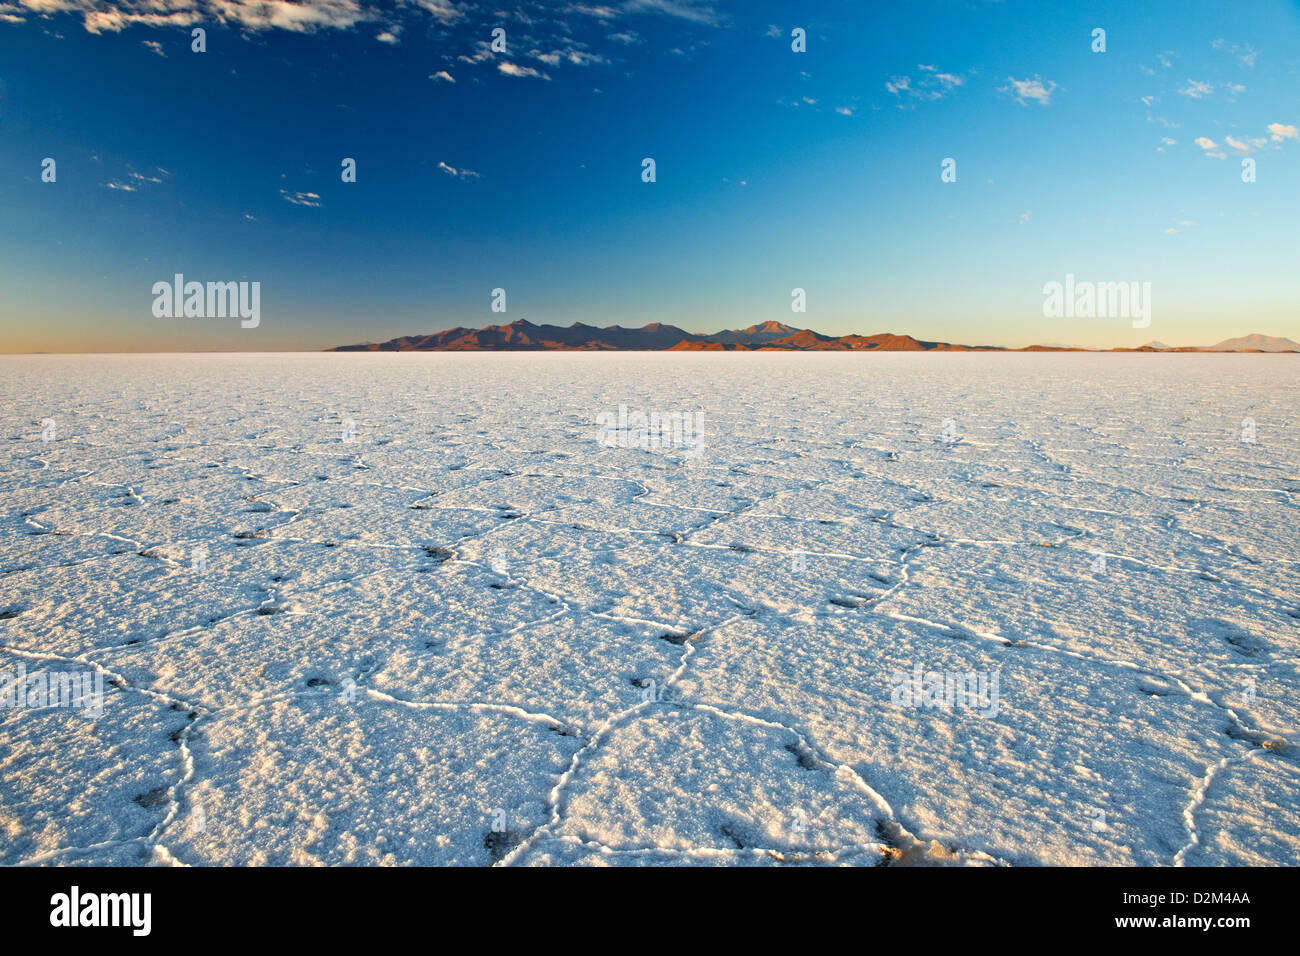 Lever du soleil sur le Salar de Uyuni, le plus grand lac de sel, la Bolivie, l'Amérique du Sud Photo Stock